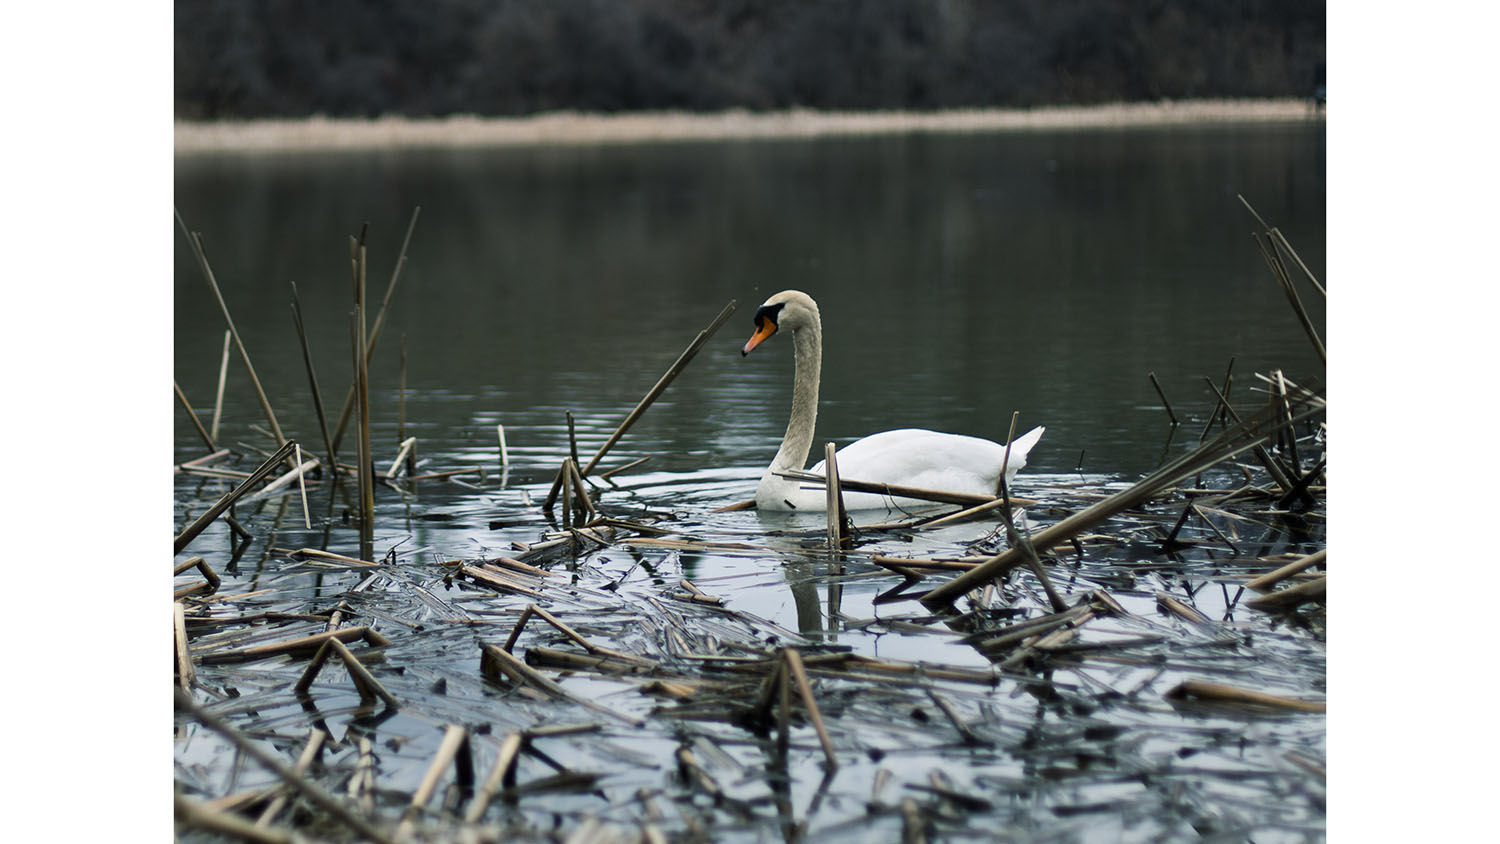 A photo of a swan in the water next to tree brush.